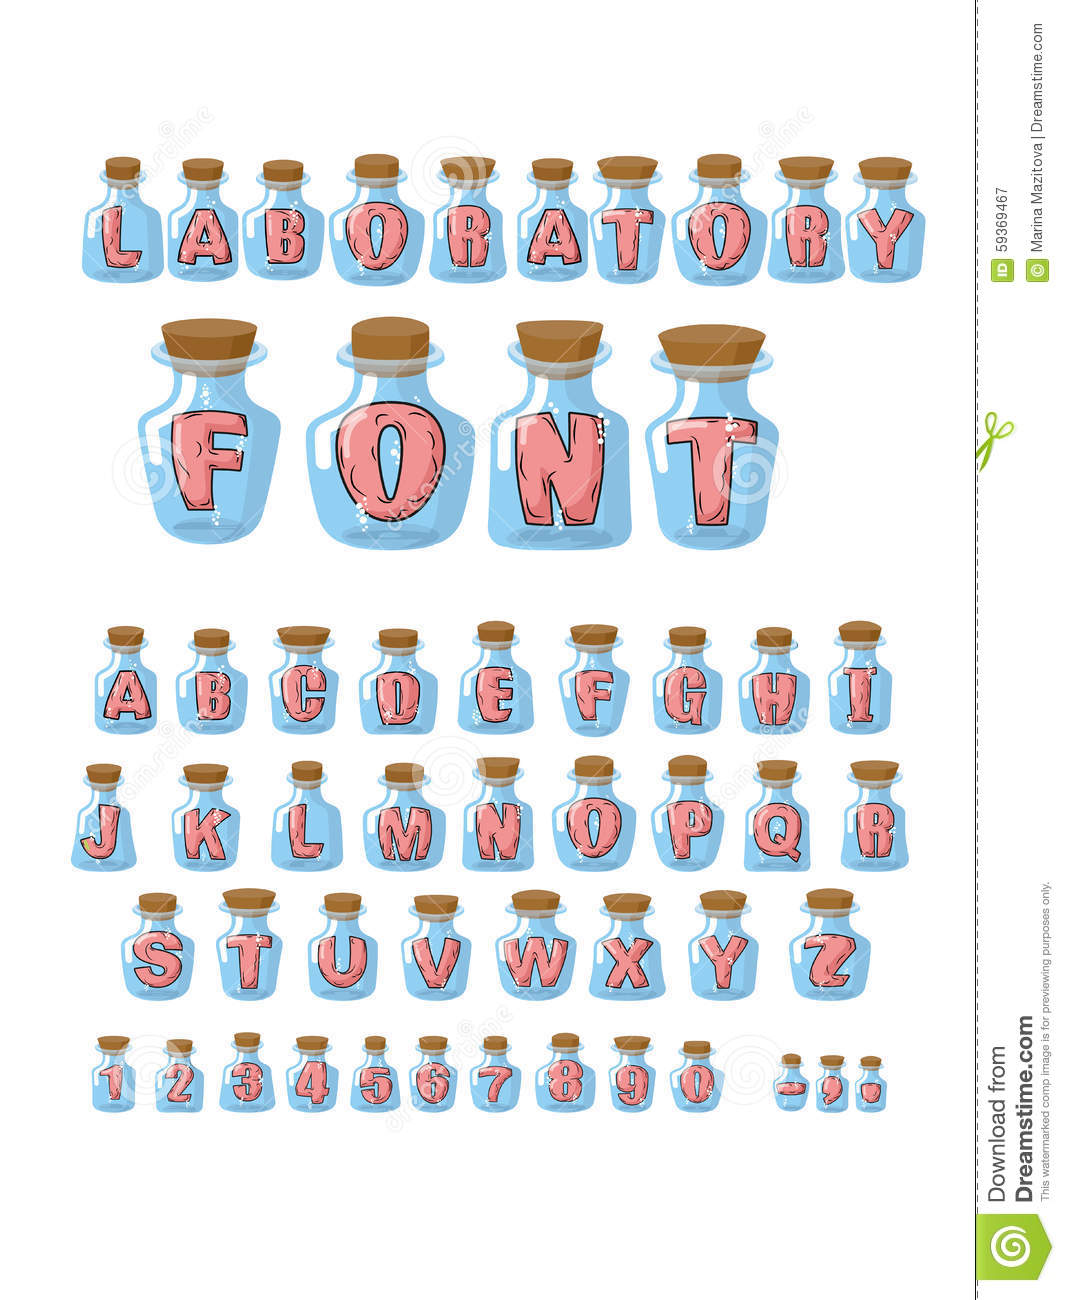 Laboratory Font Pink Live Letters In Glass Flasks A Alphanet Experiment 4 Parallel Circuit Alphabet Jar For Research Vector Hilarious Containers Experiments